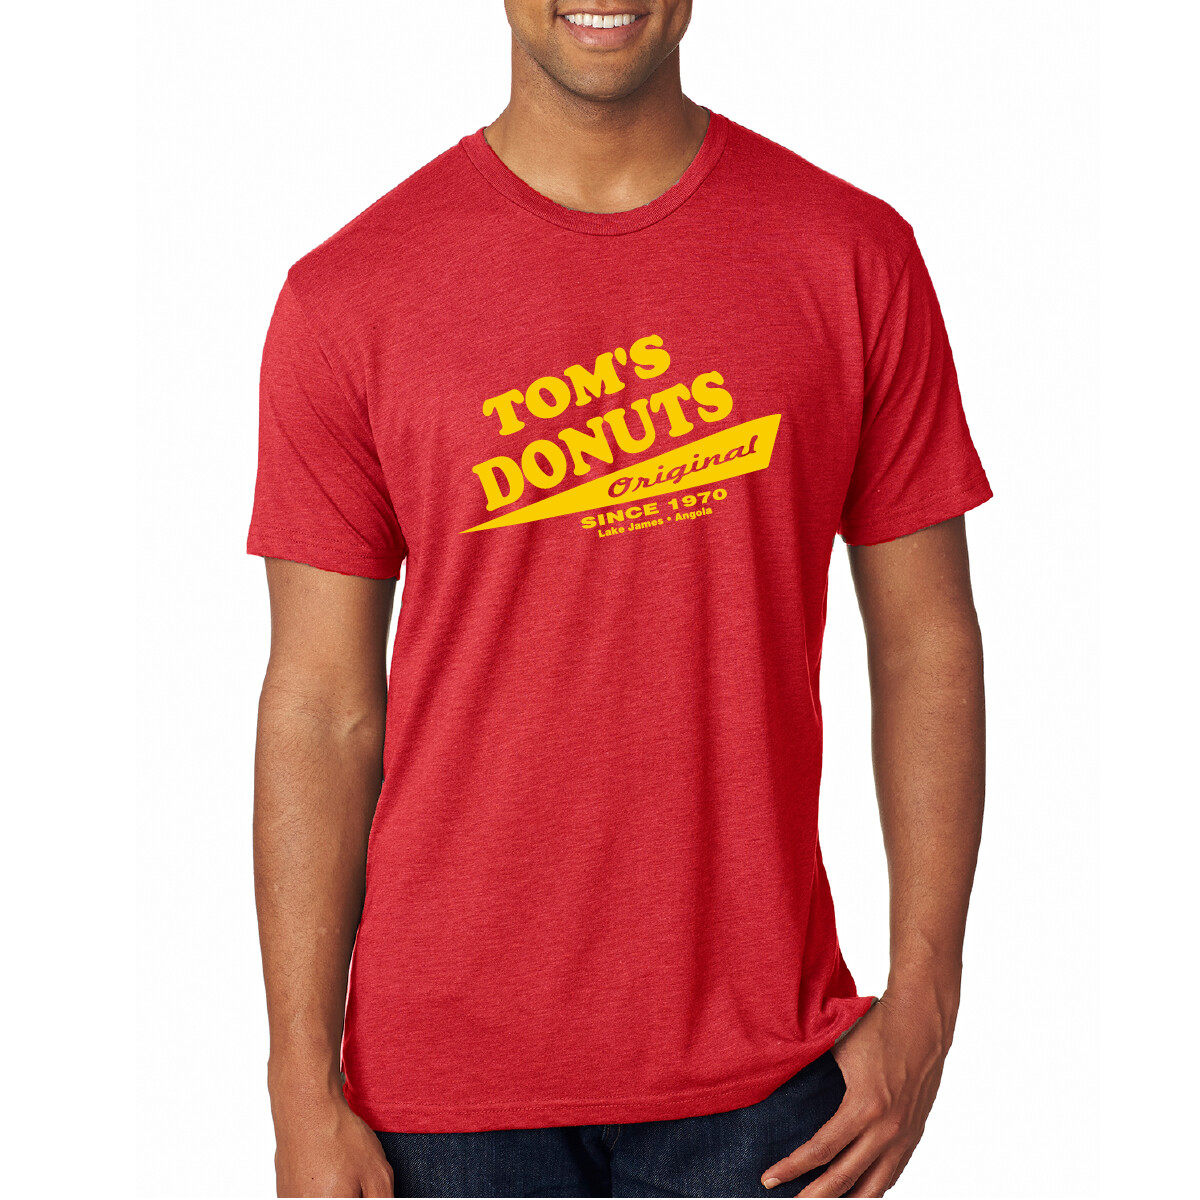 Unisex Tom's Donuts Original  T-Shirt - Red/Yellow